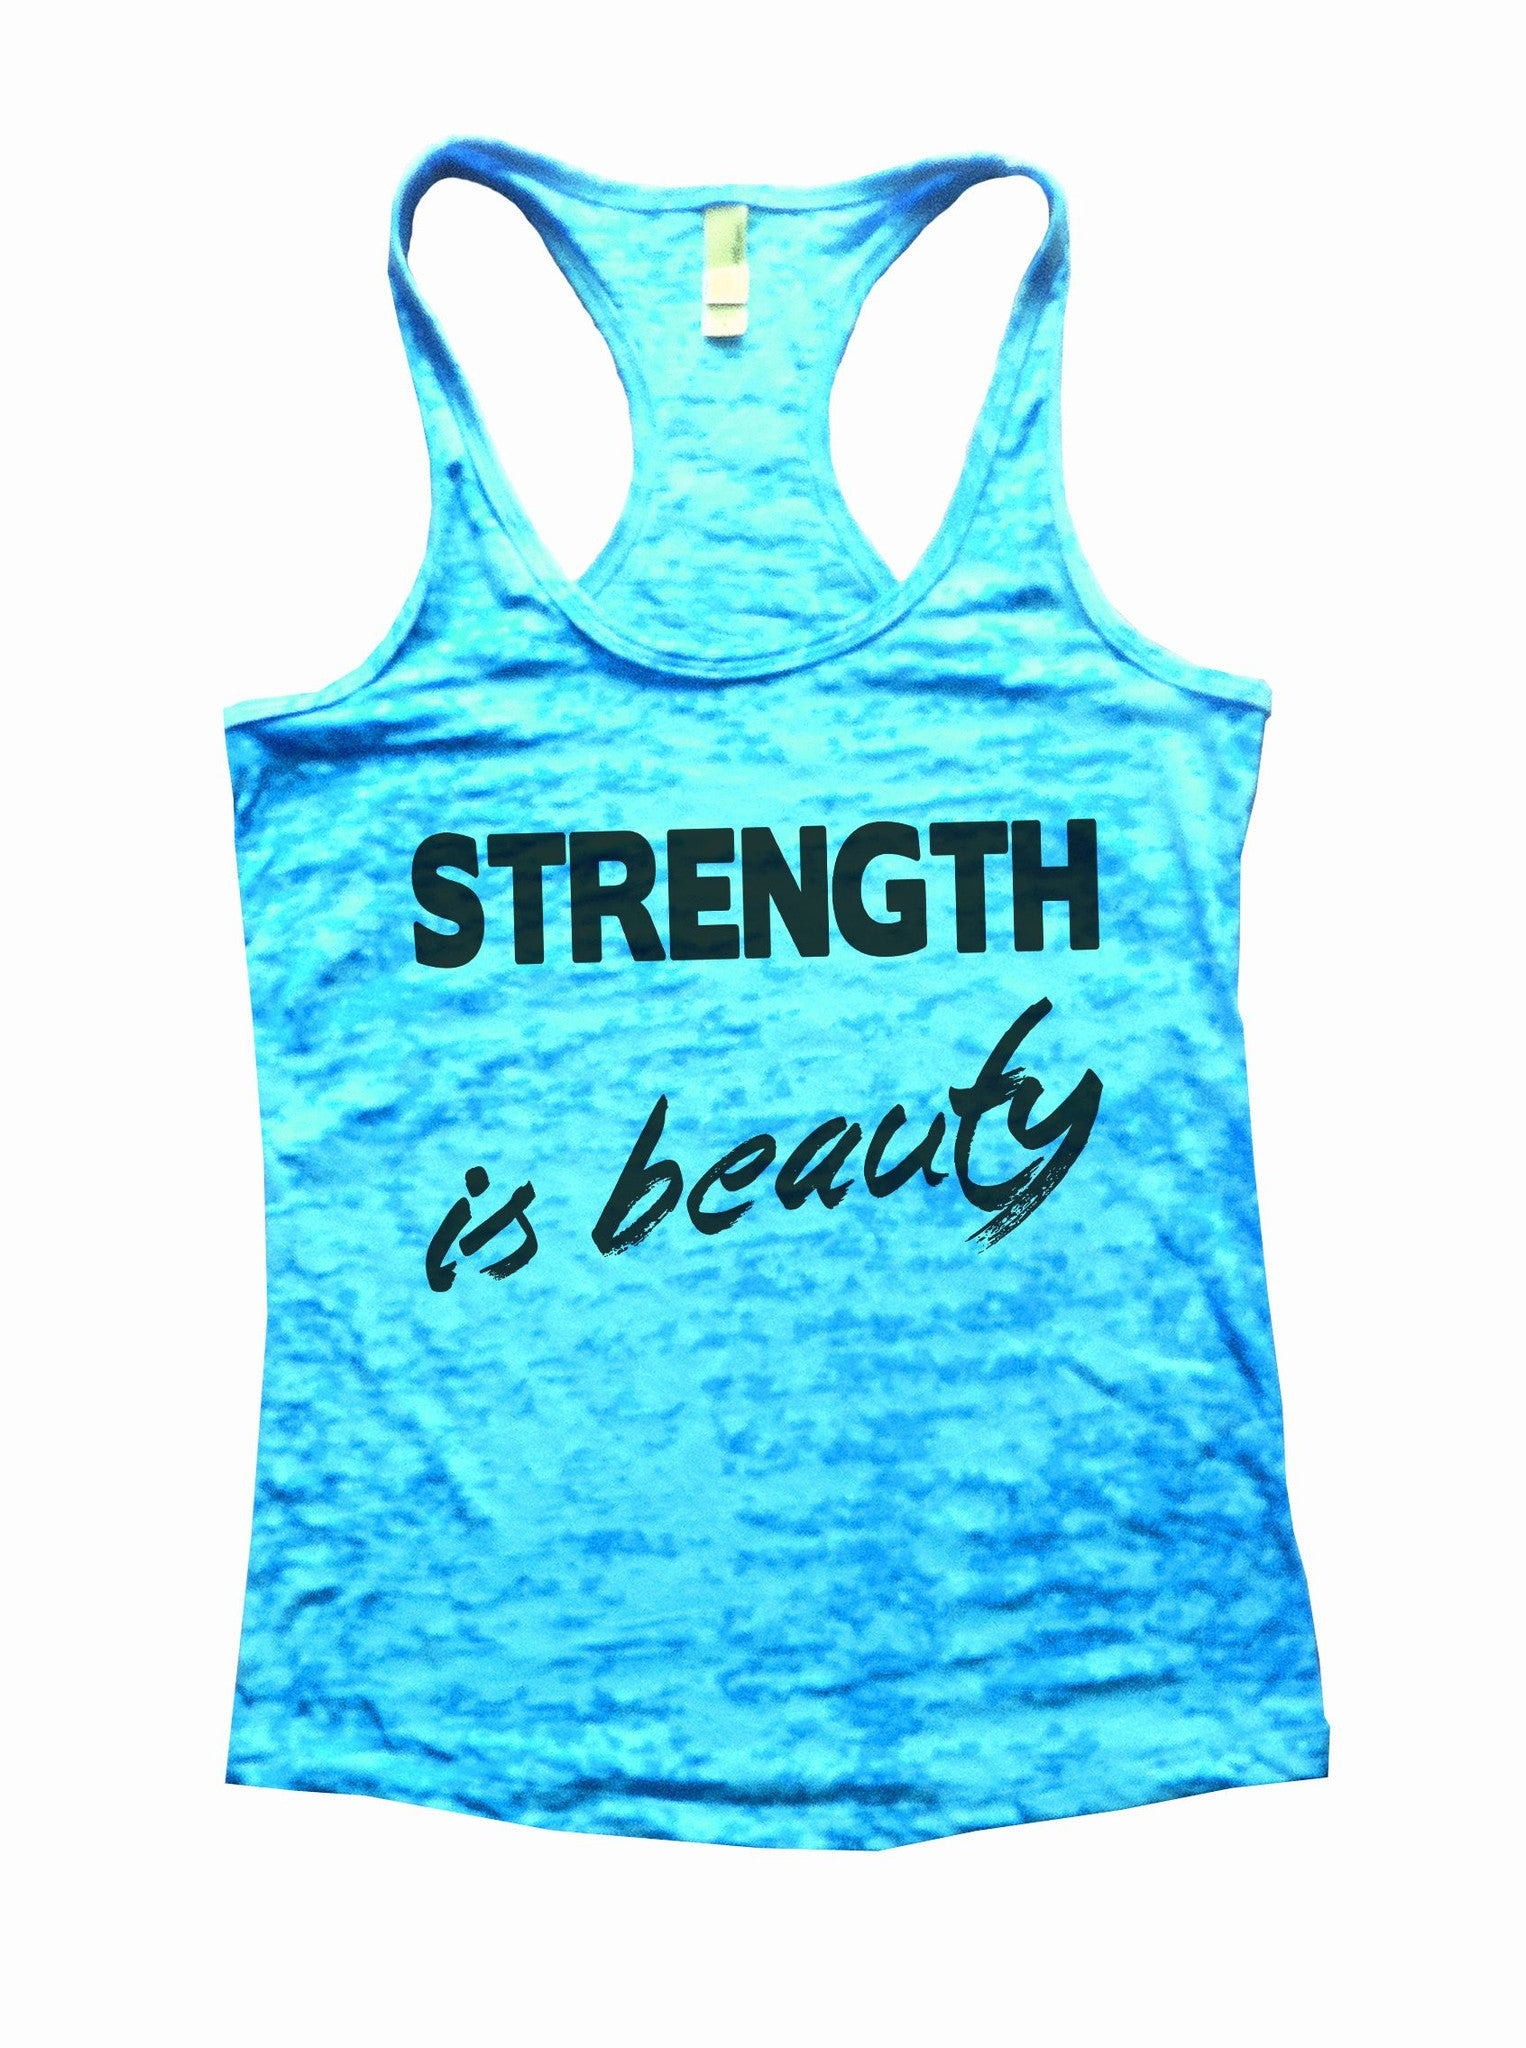 Strength Is Beauty Burnout Tank Top By BurnoutTankTops.com - 690 - Funny Shirts Tank Tops Burnouts and Triblends  - 1